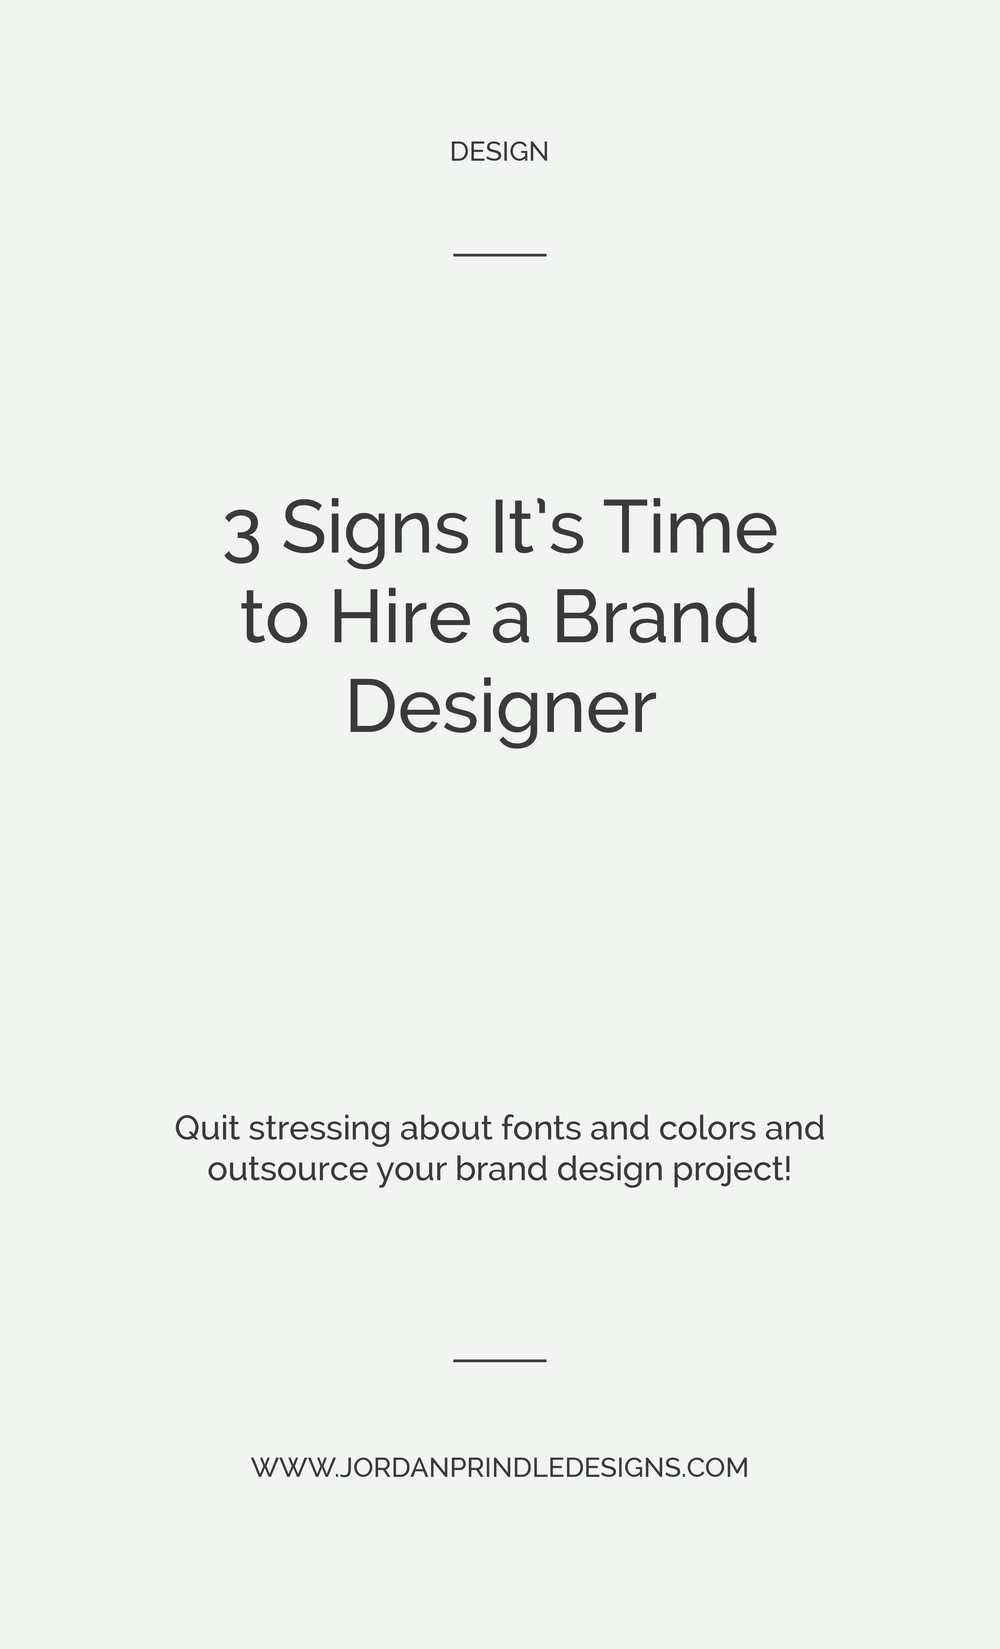 3 Signs It's Time to Hire a Brand Designer   As an entrepreneur, you are always making financial investments for your business. But, how do you know when your business needs to hire a brand designer? Find out at www.jordanprindledesigns.com #branddesigner #minimalistdesigner